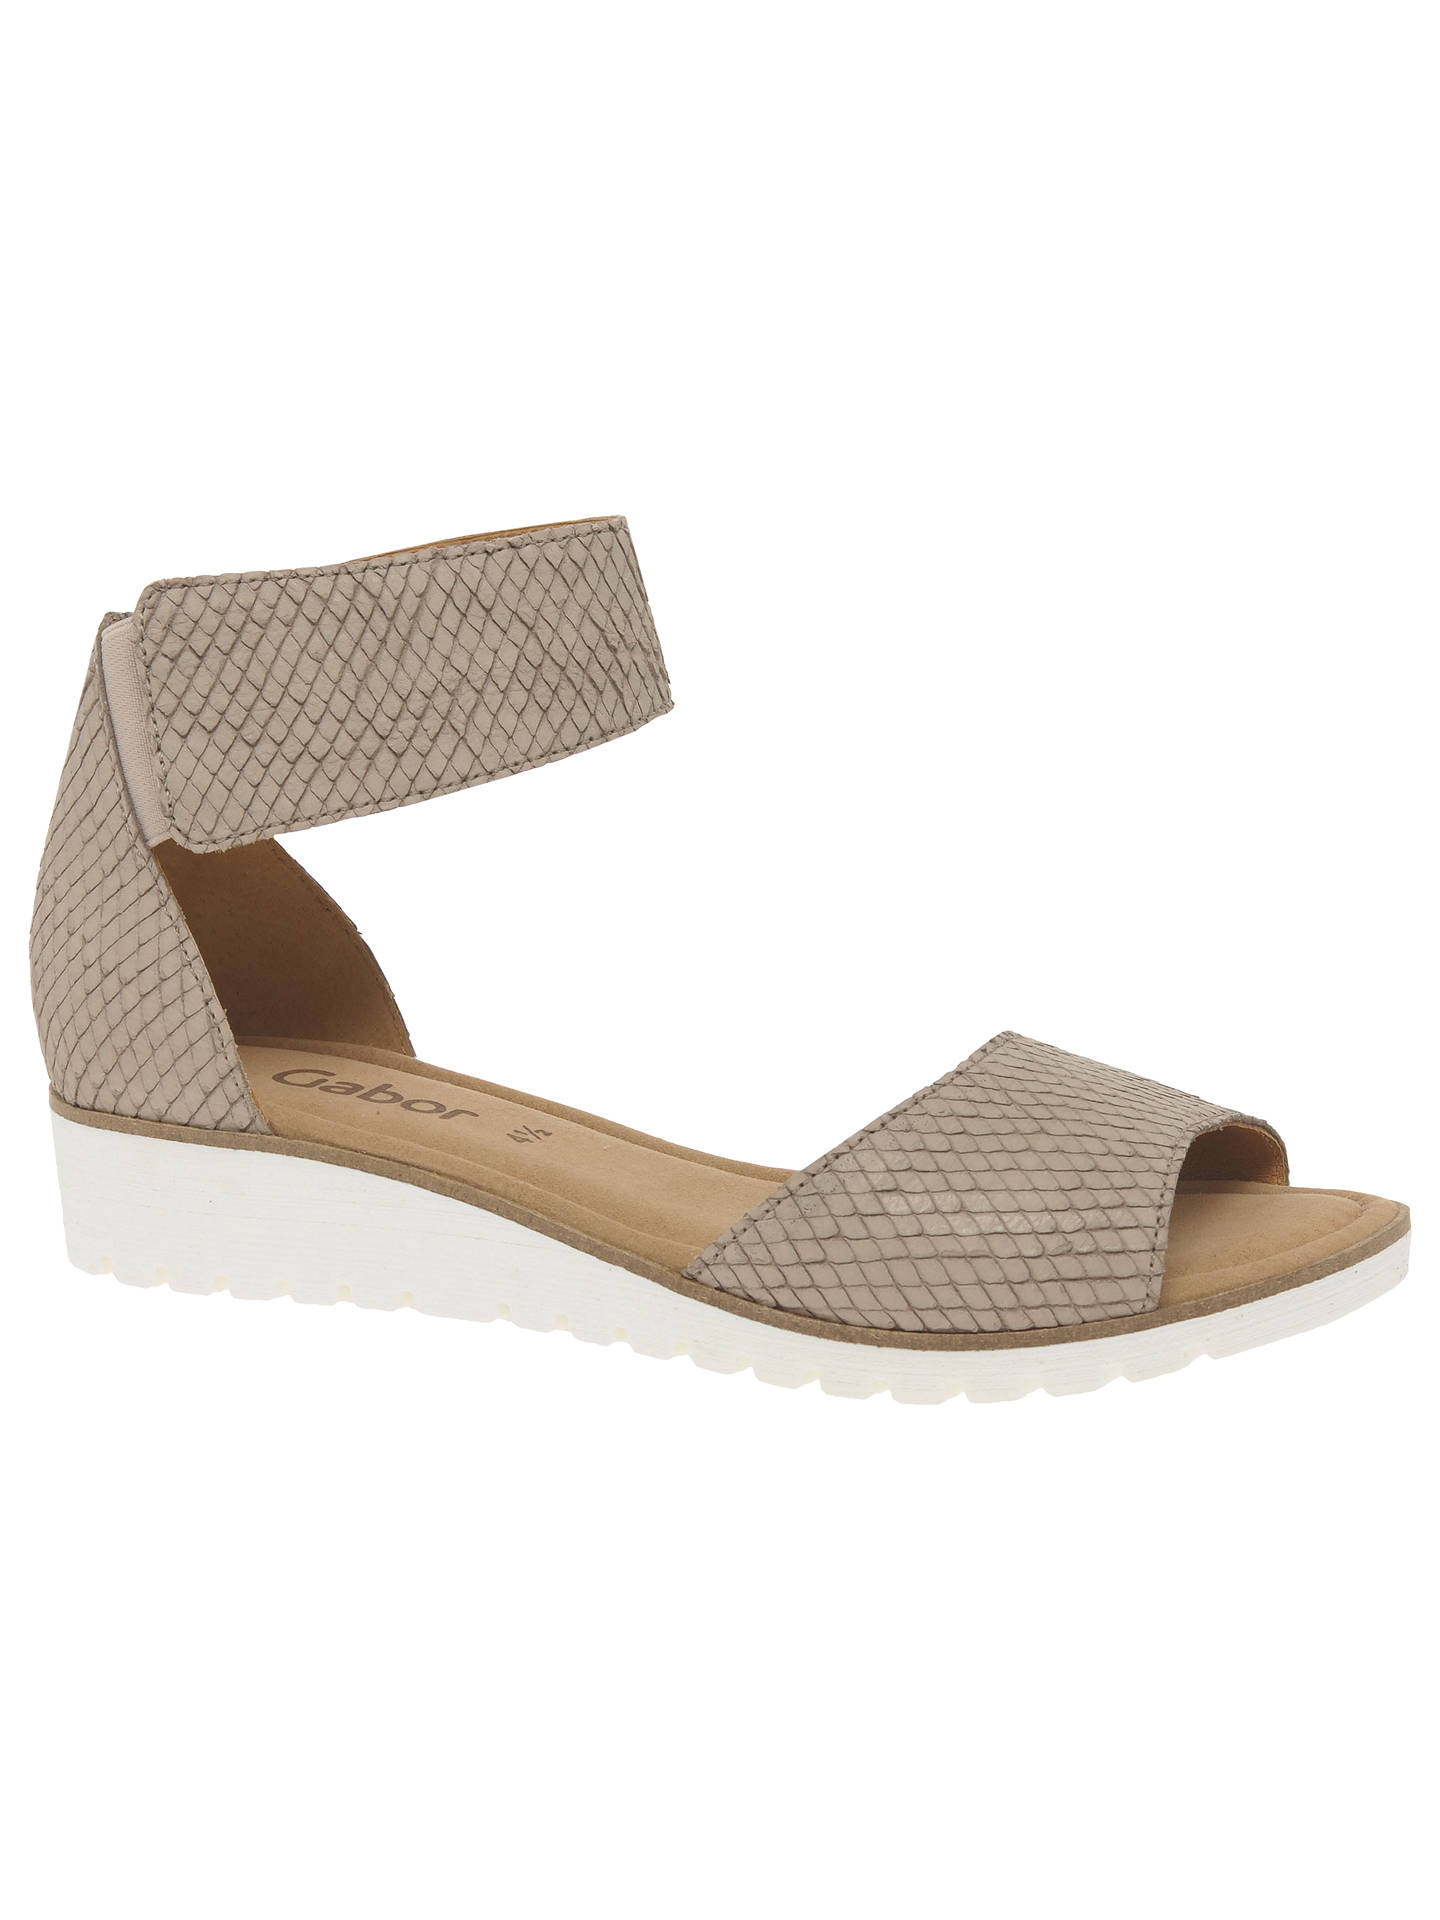 9a893051fd8f Buy Gabor Penny Wedge Heeled Sandals